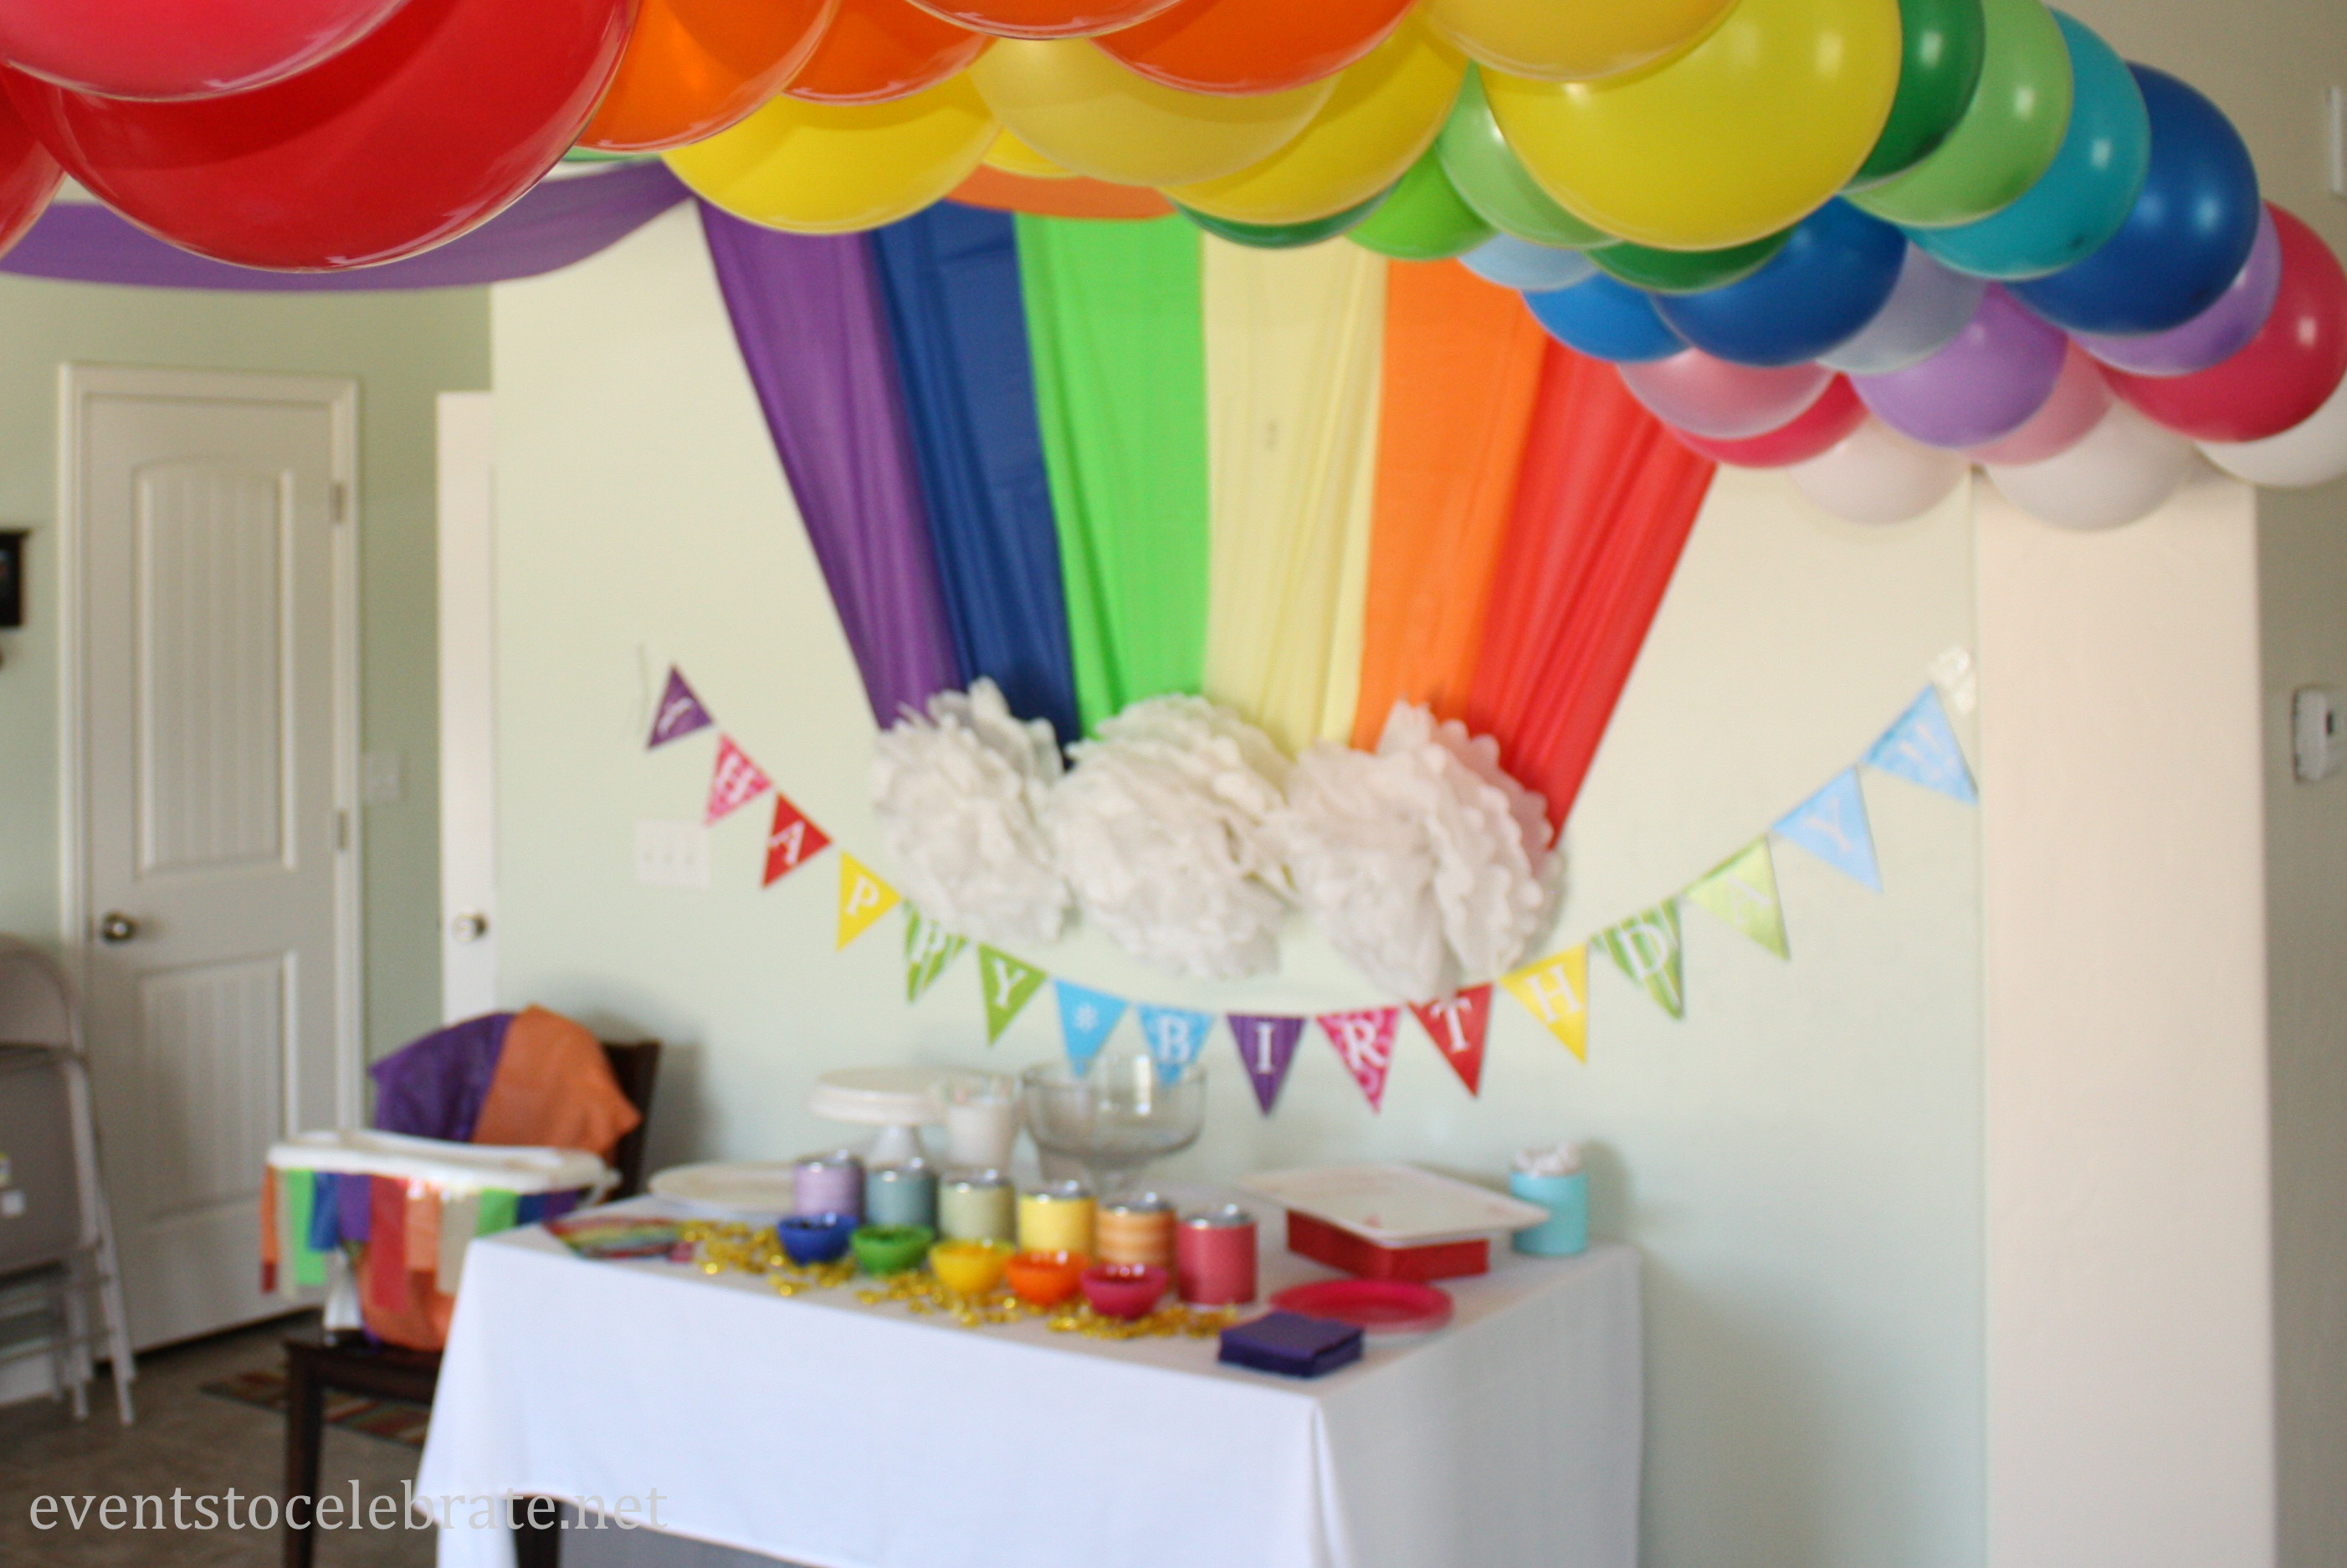 Best ideas about Rainbow Birthday Decorations . Save or Pin Rainbow Archives events to CELEBRATE Now.